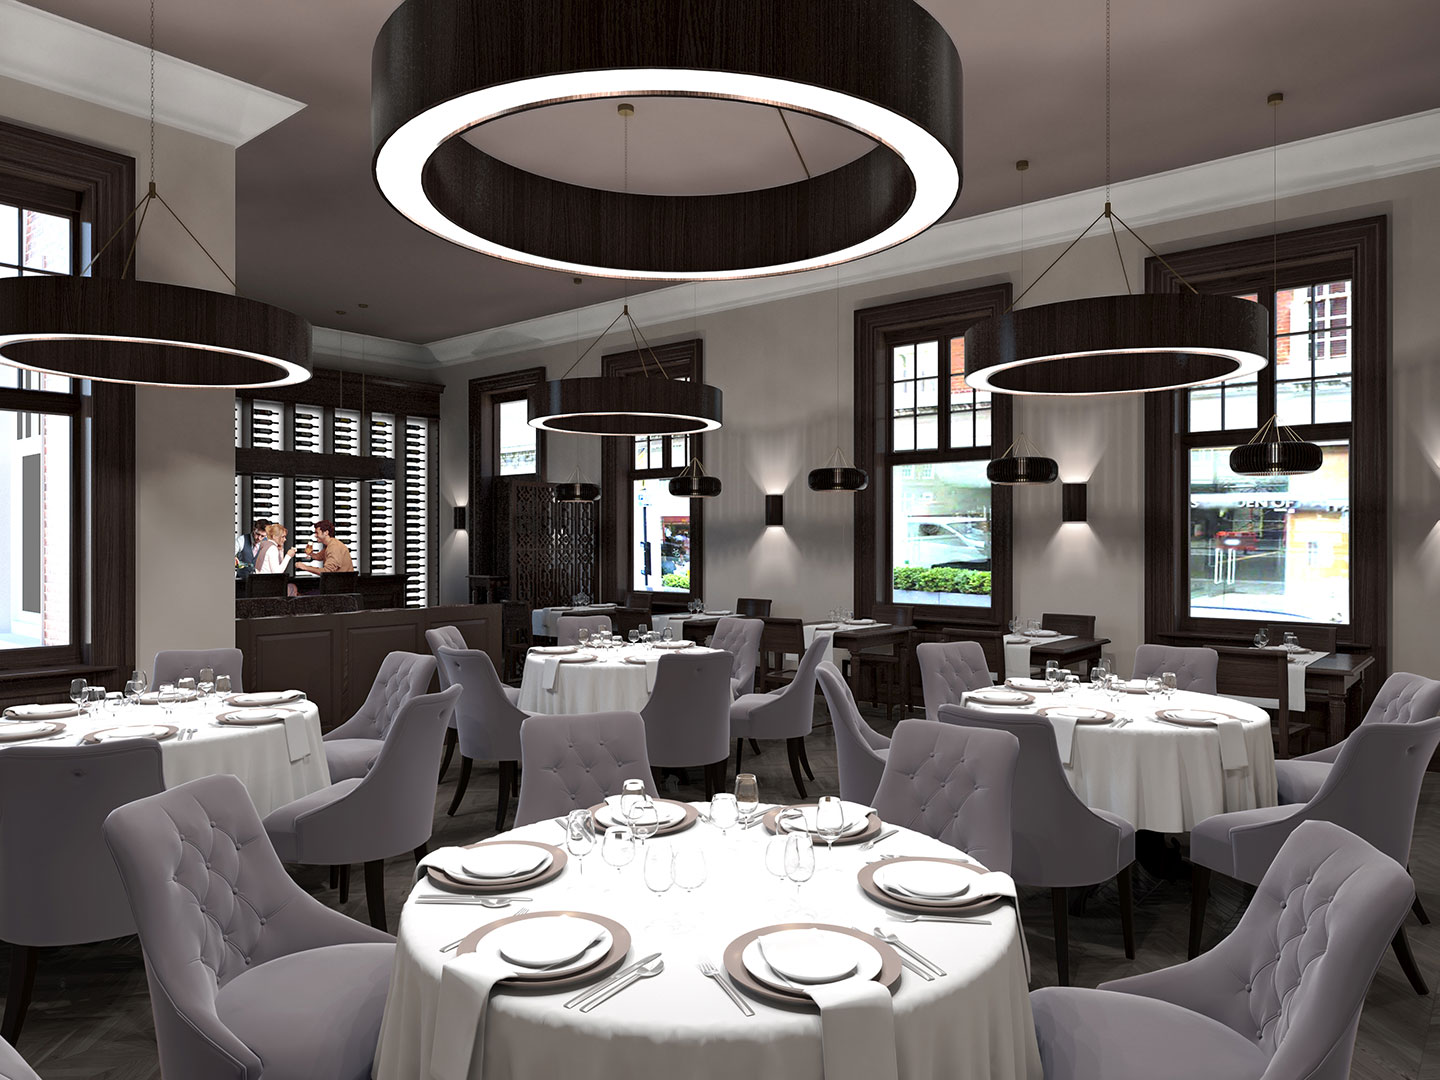 22_grosvenor_square-restaurant-interior-cgi